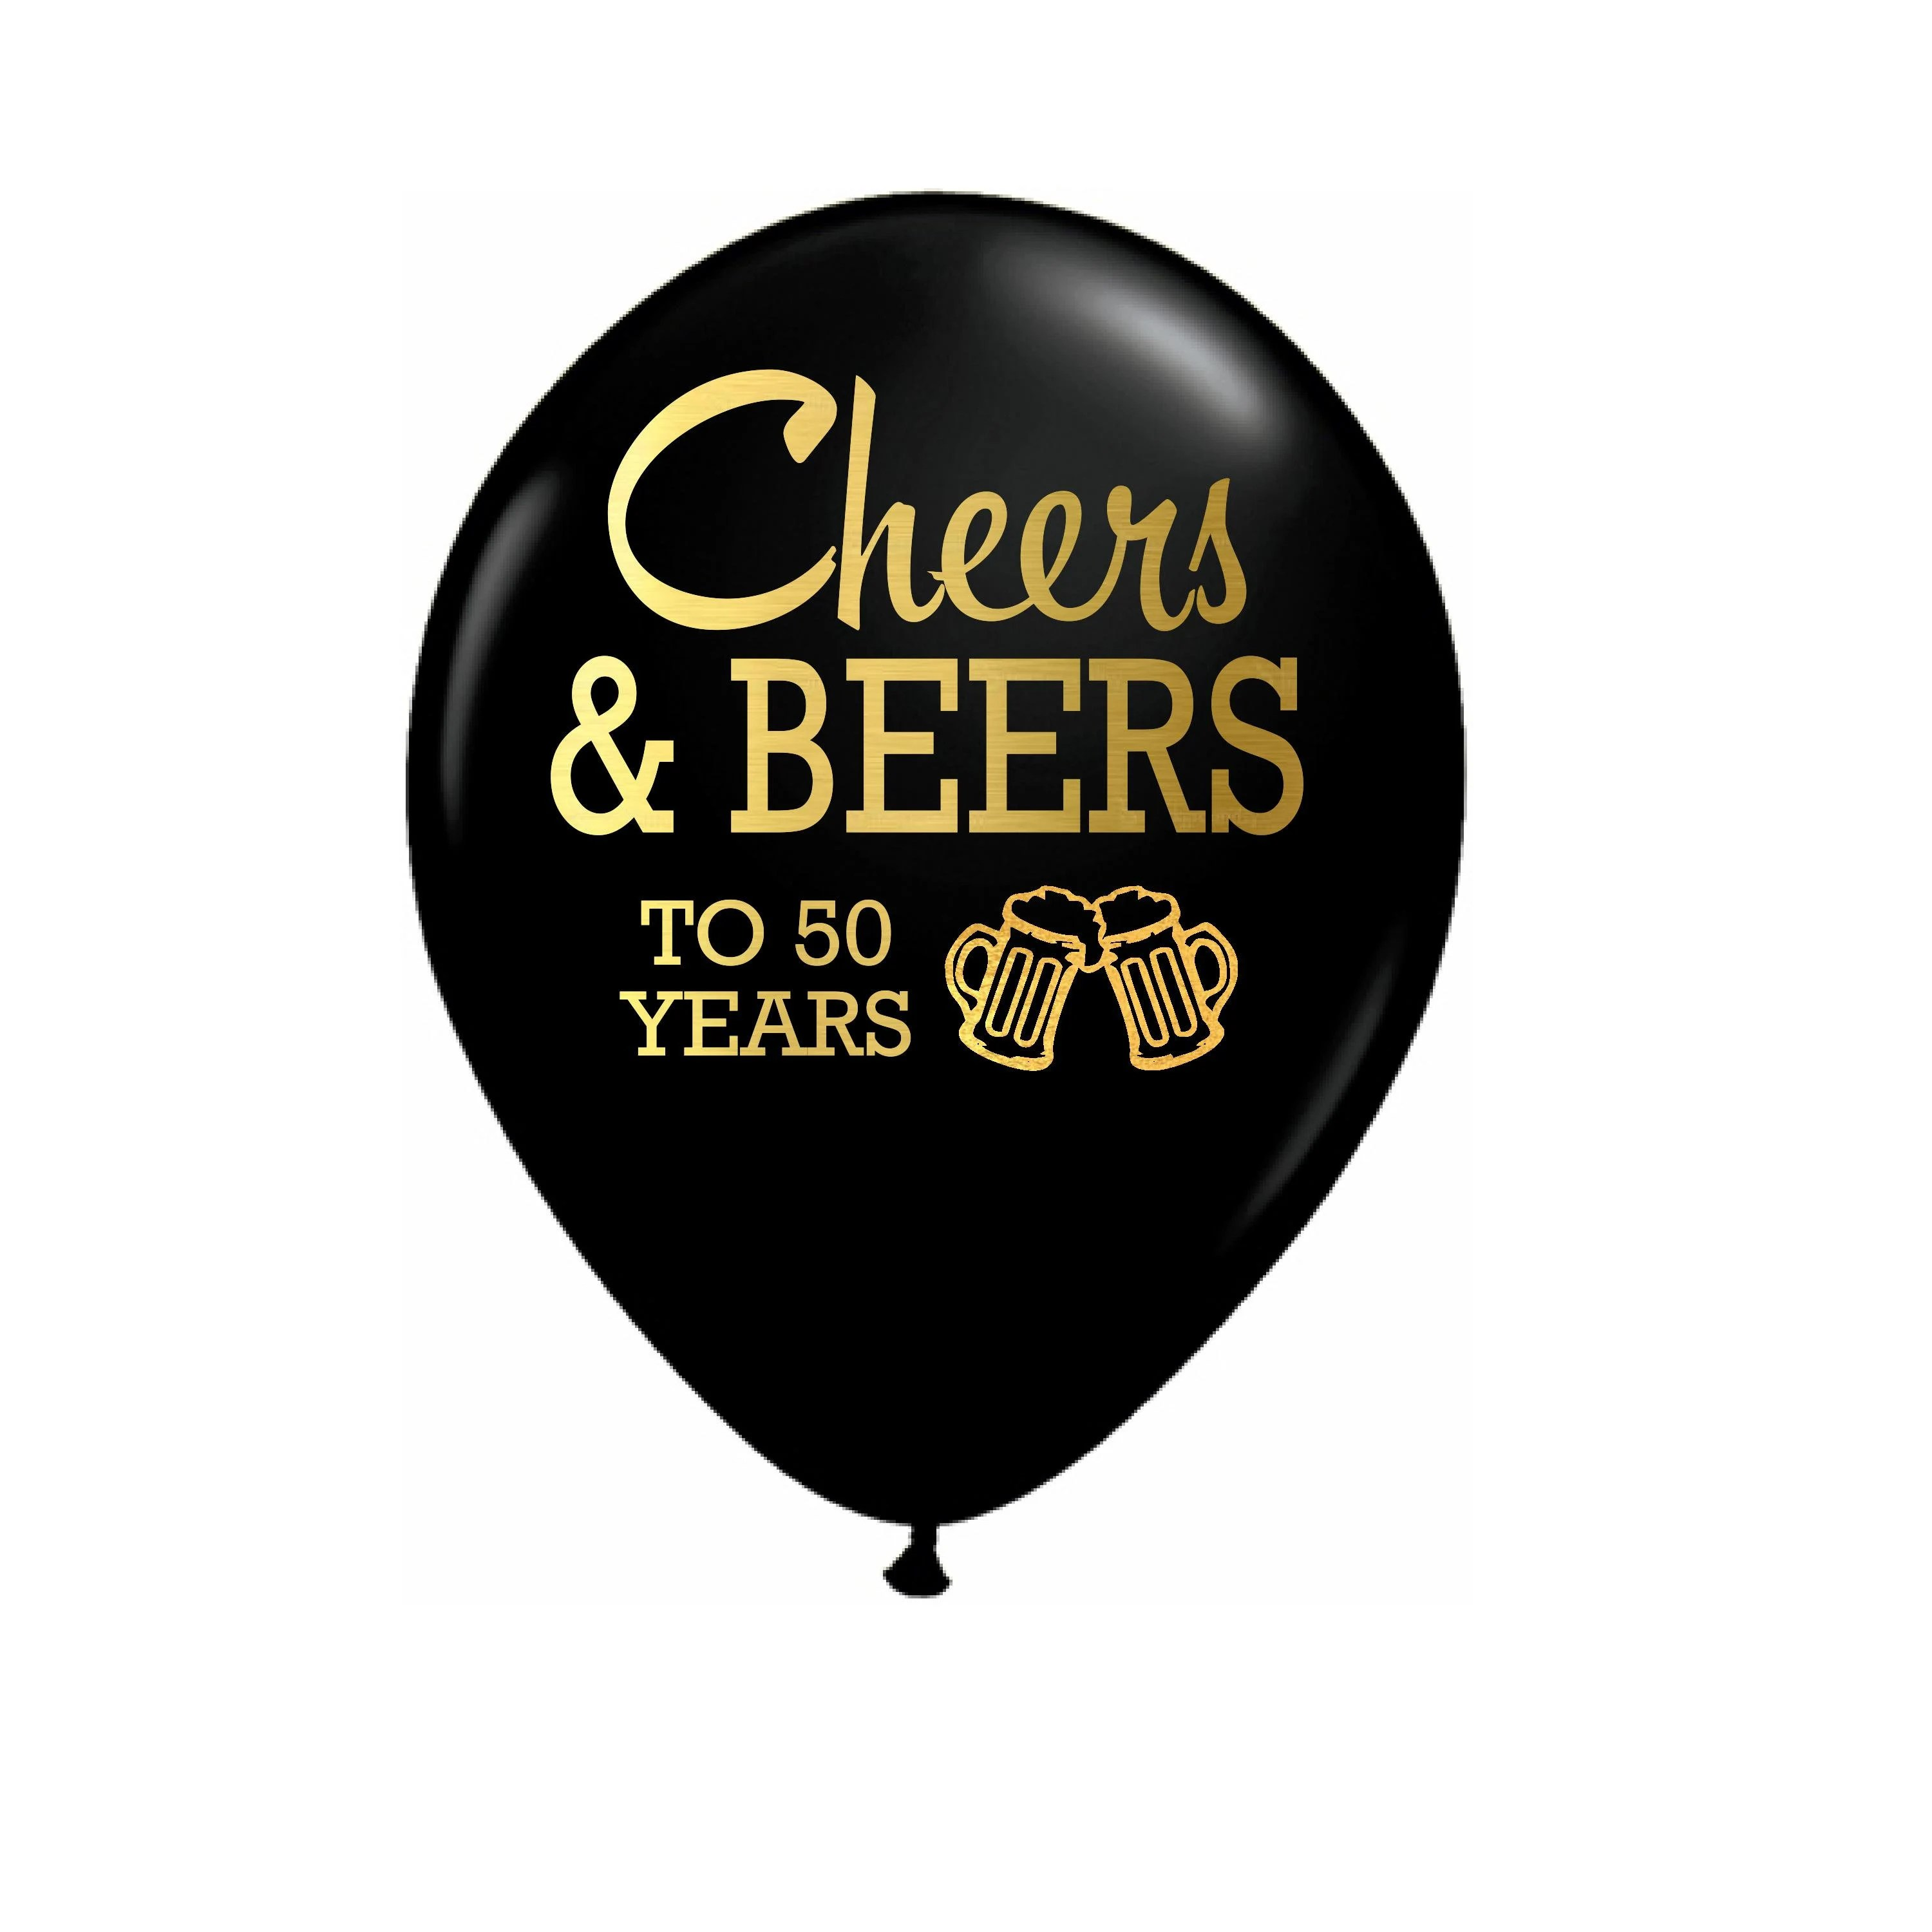 Cheers And Beers To 50 Years 50th Birthday Party Balloon 50th Birthday Party Decor 50th Birthday Decoration 50th Birthday Balloon Balloons Party Decor